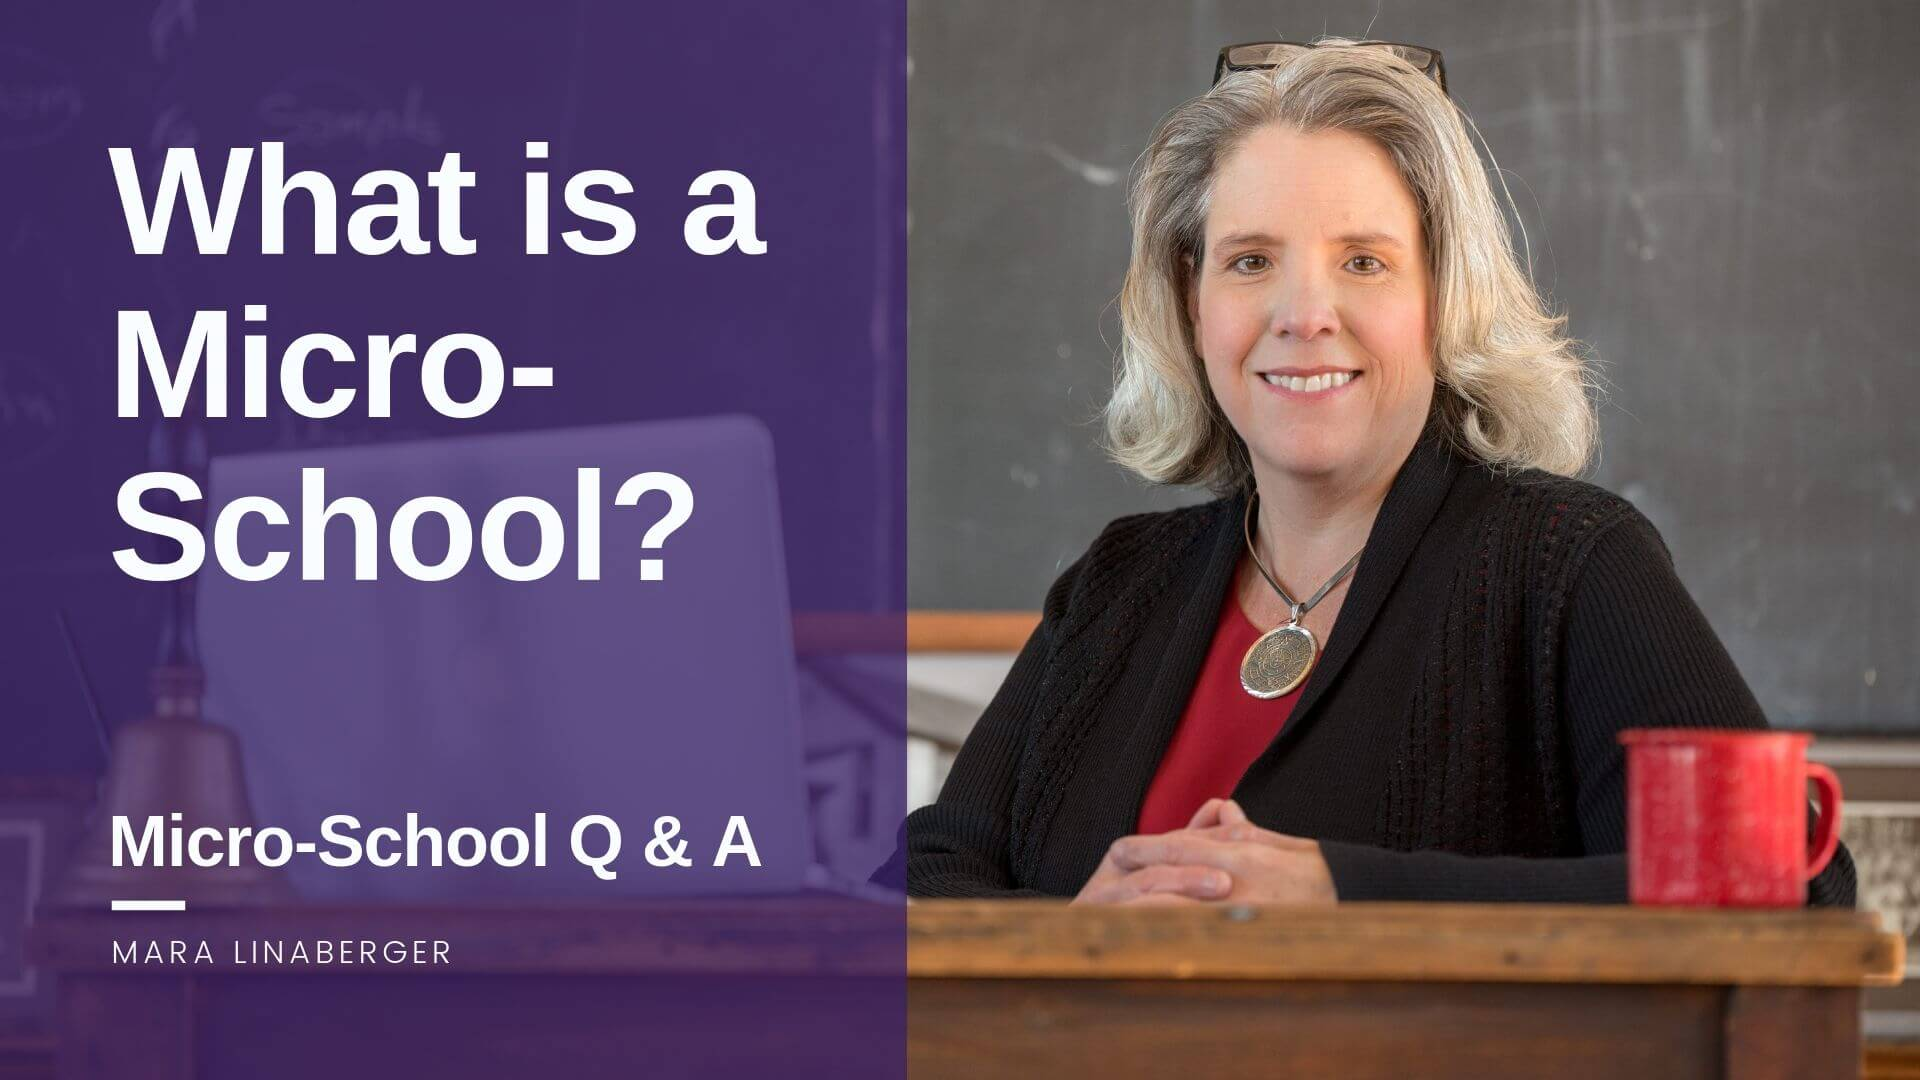 what is a micro-school?